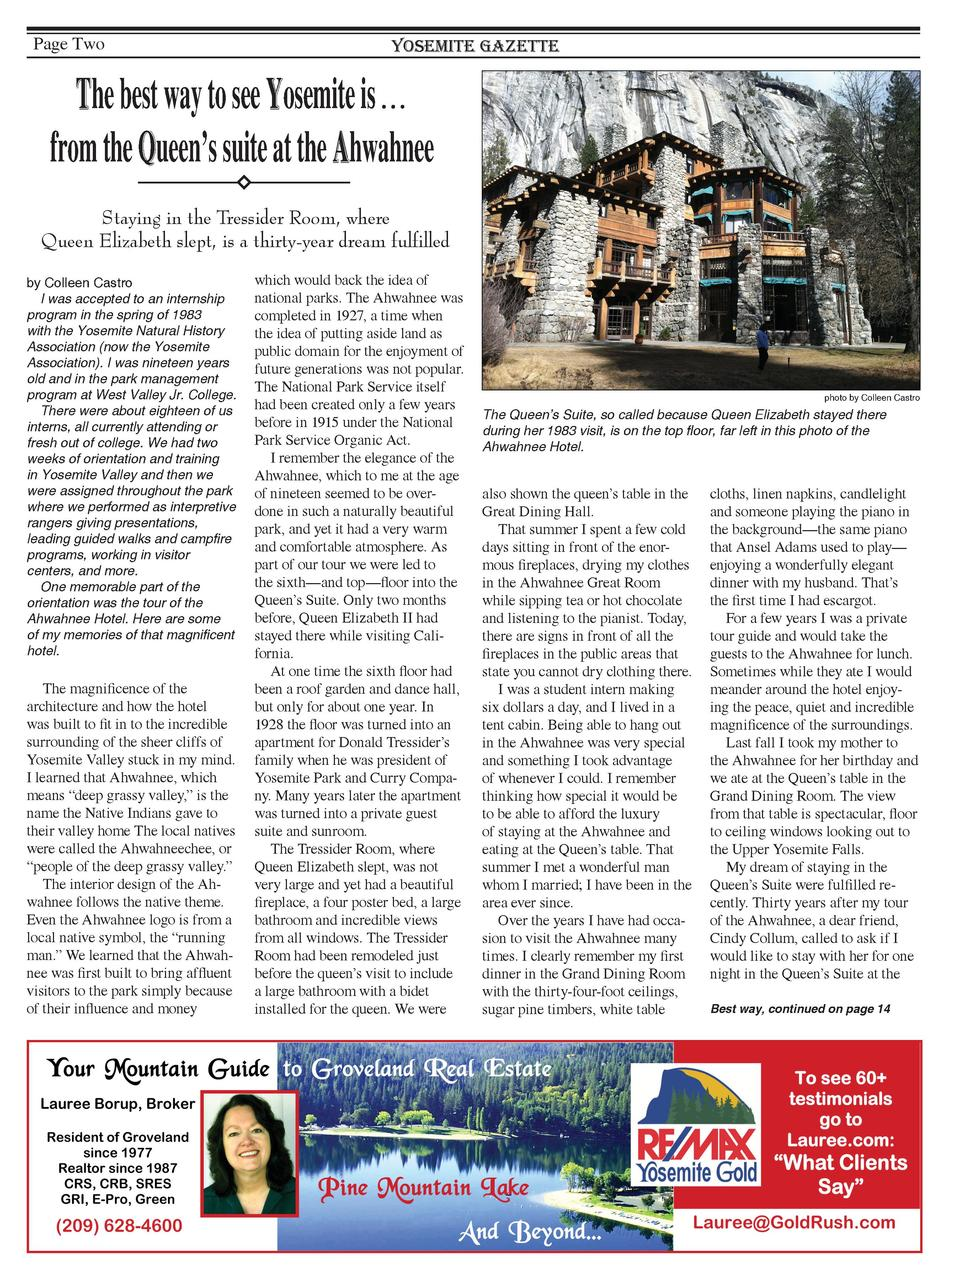 Page Two  Yosemite Gazette  The best way to see Yosemite is     from the Queen   s suite at the Ahwahnee Staying in the Tr...